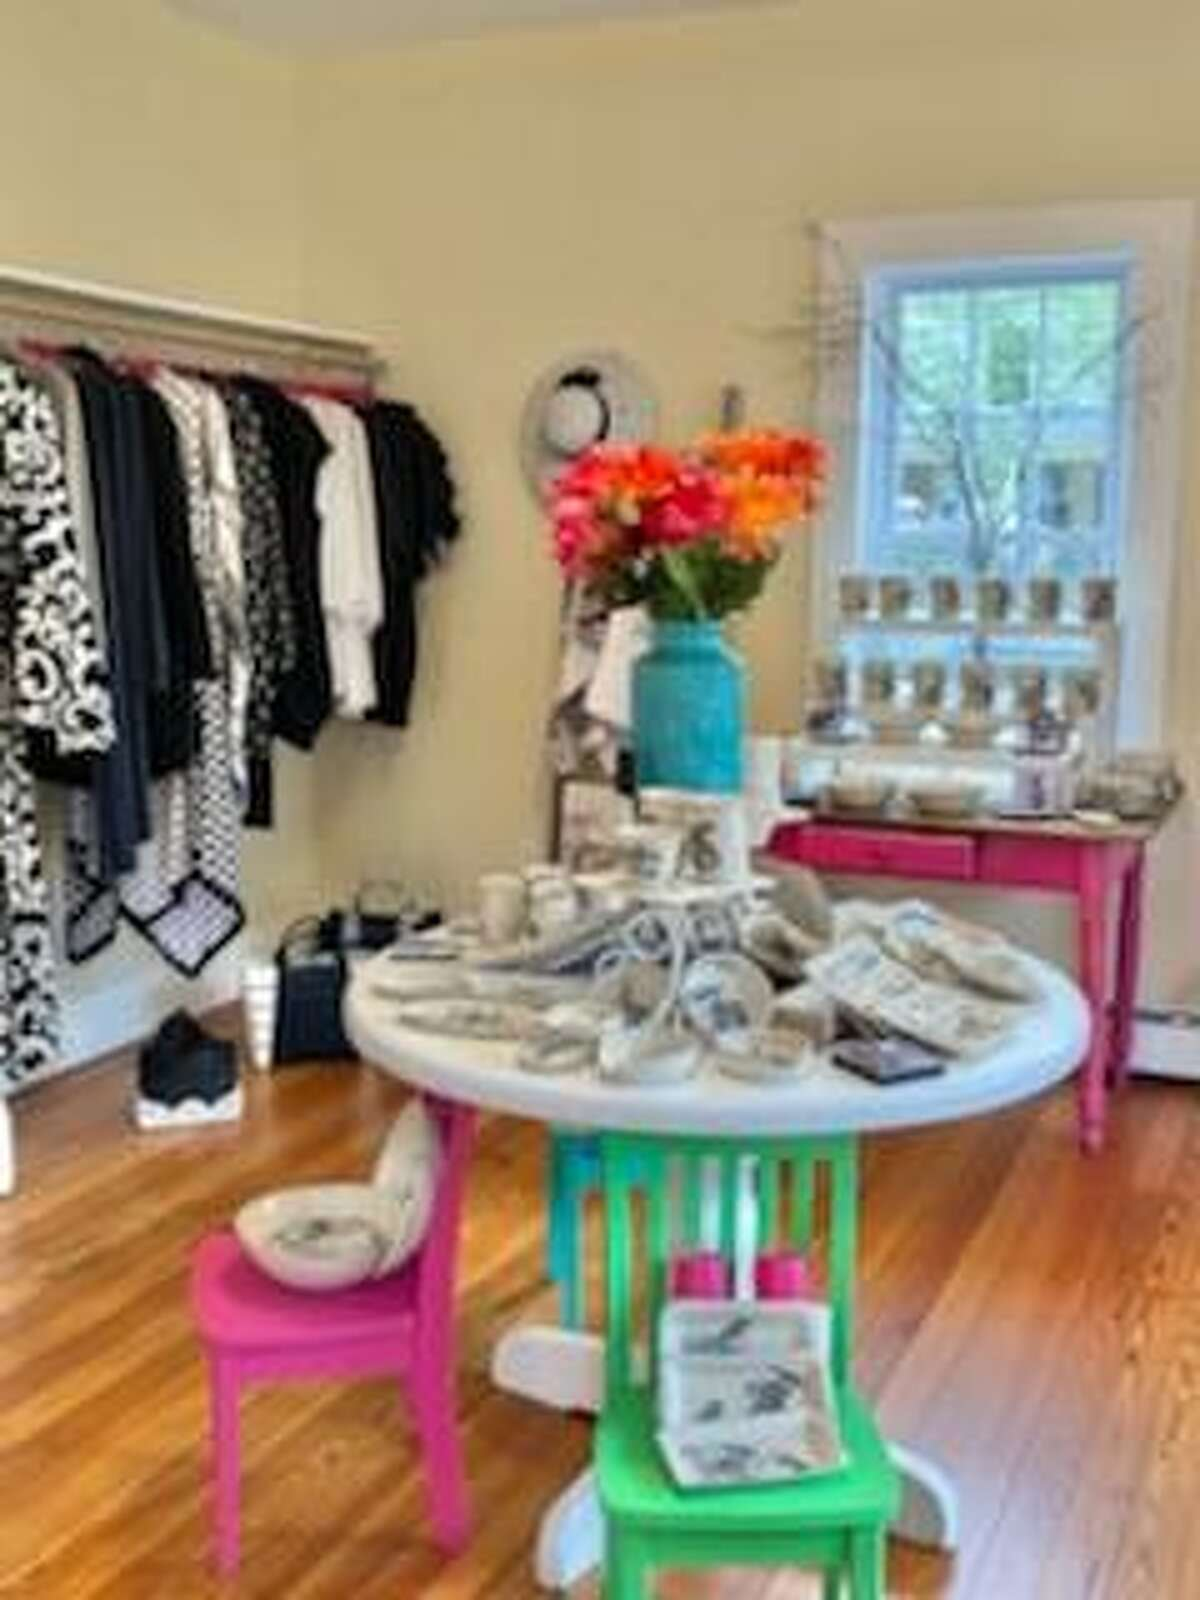 Brenda Quin, a New Hartford resident and native South African who has worked as a fashion designer for decades, recently opened her own business, Diva USA, in Albany Turnpike, Canton.